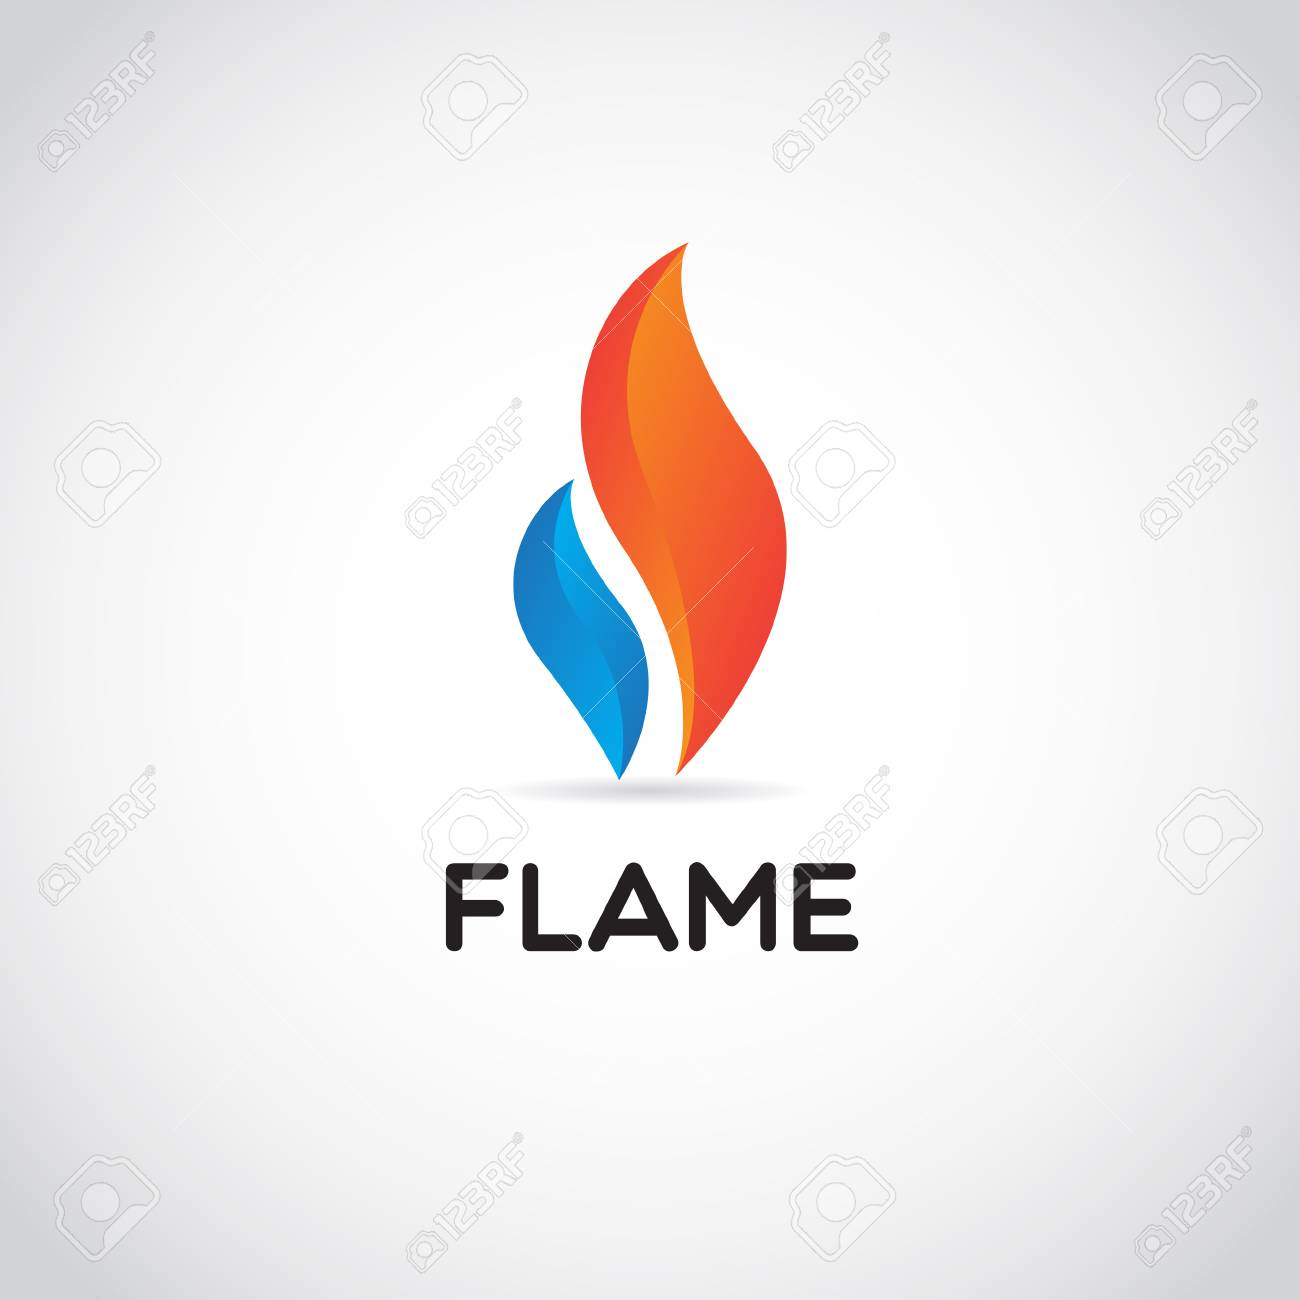 Clean Red Blue Fire Flame Logo Sign Symbol Icon - 125123189